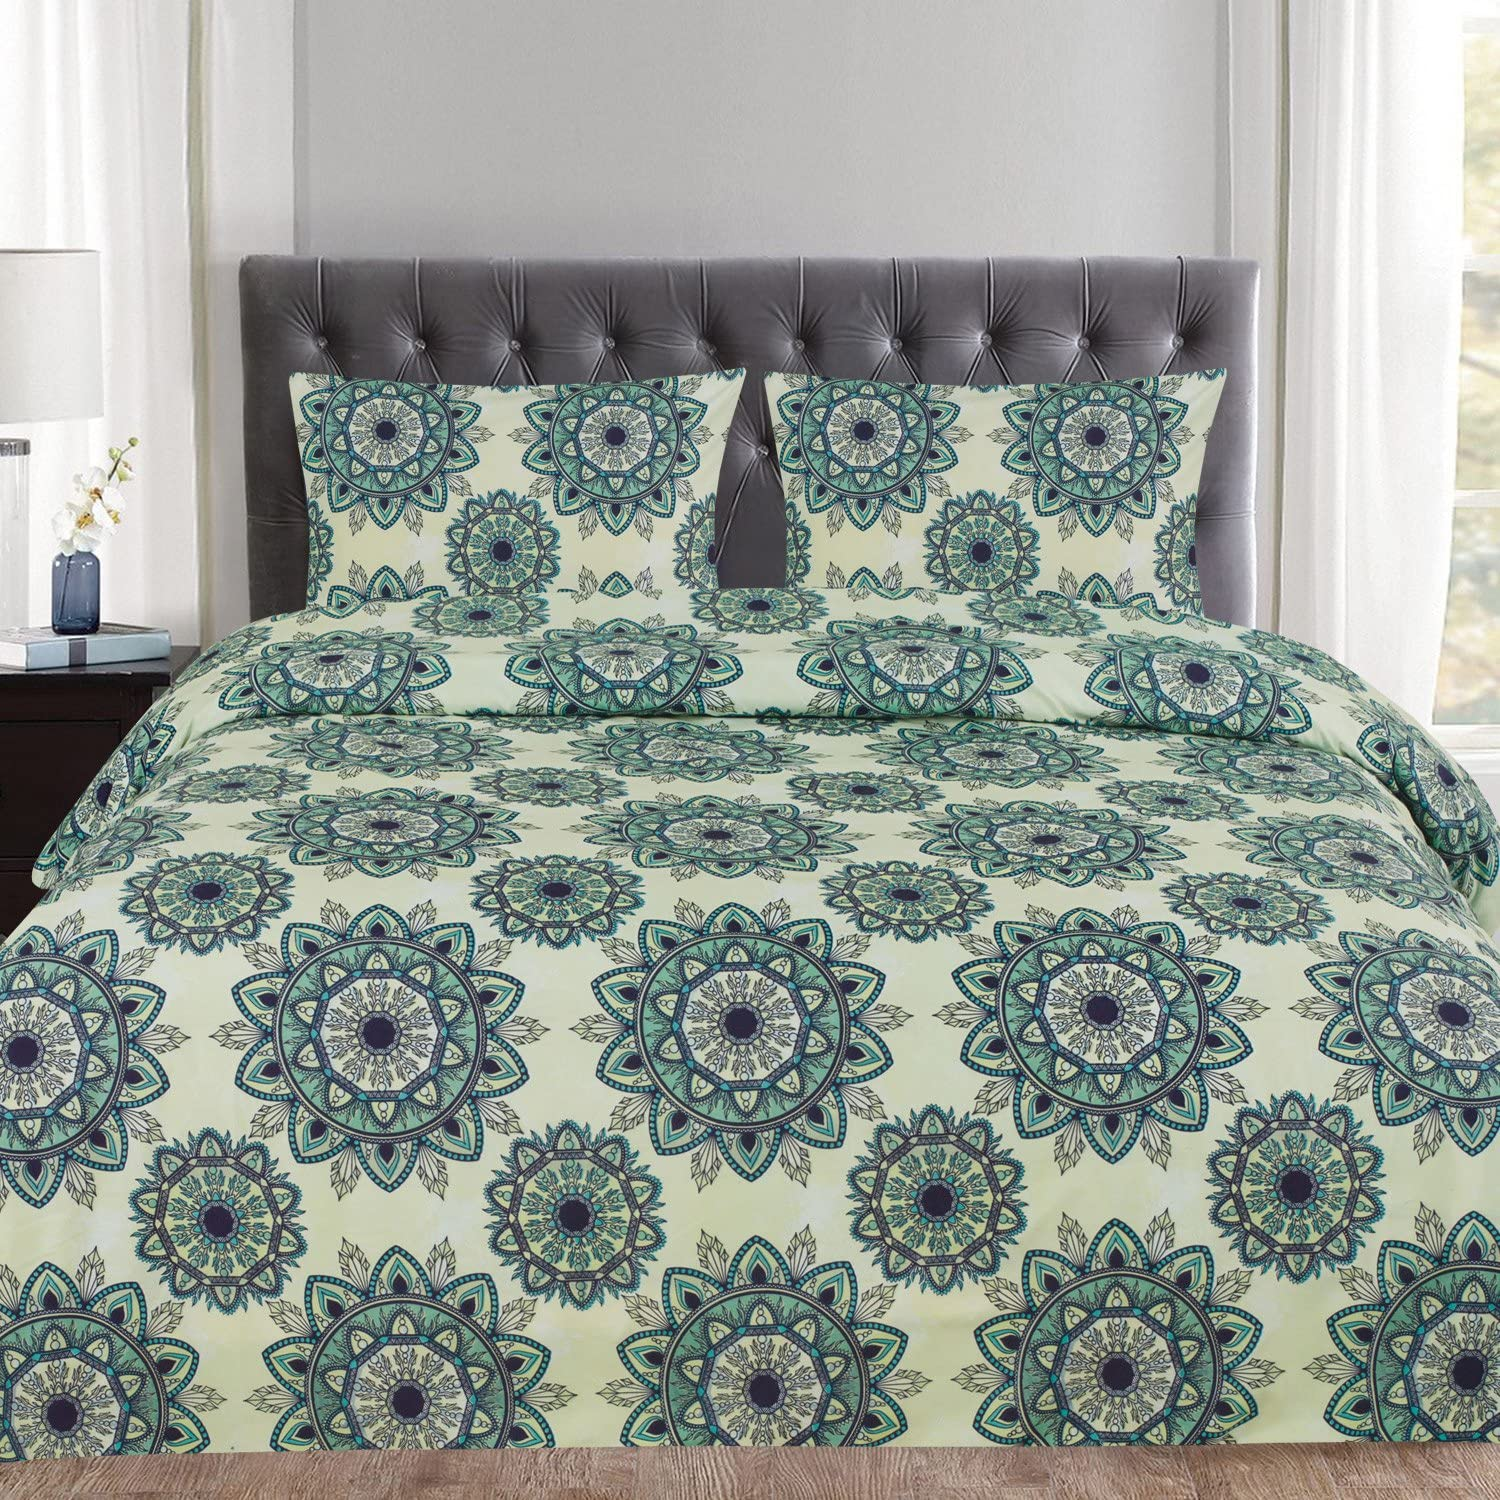 Sweet Home Collection Mandala Pattern, Full/Queen, Ashley